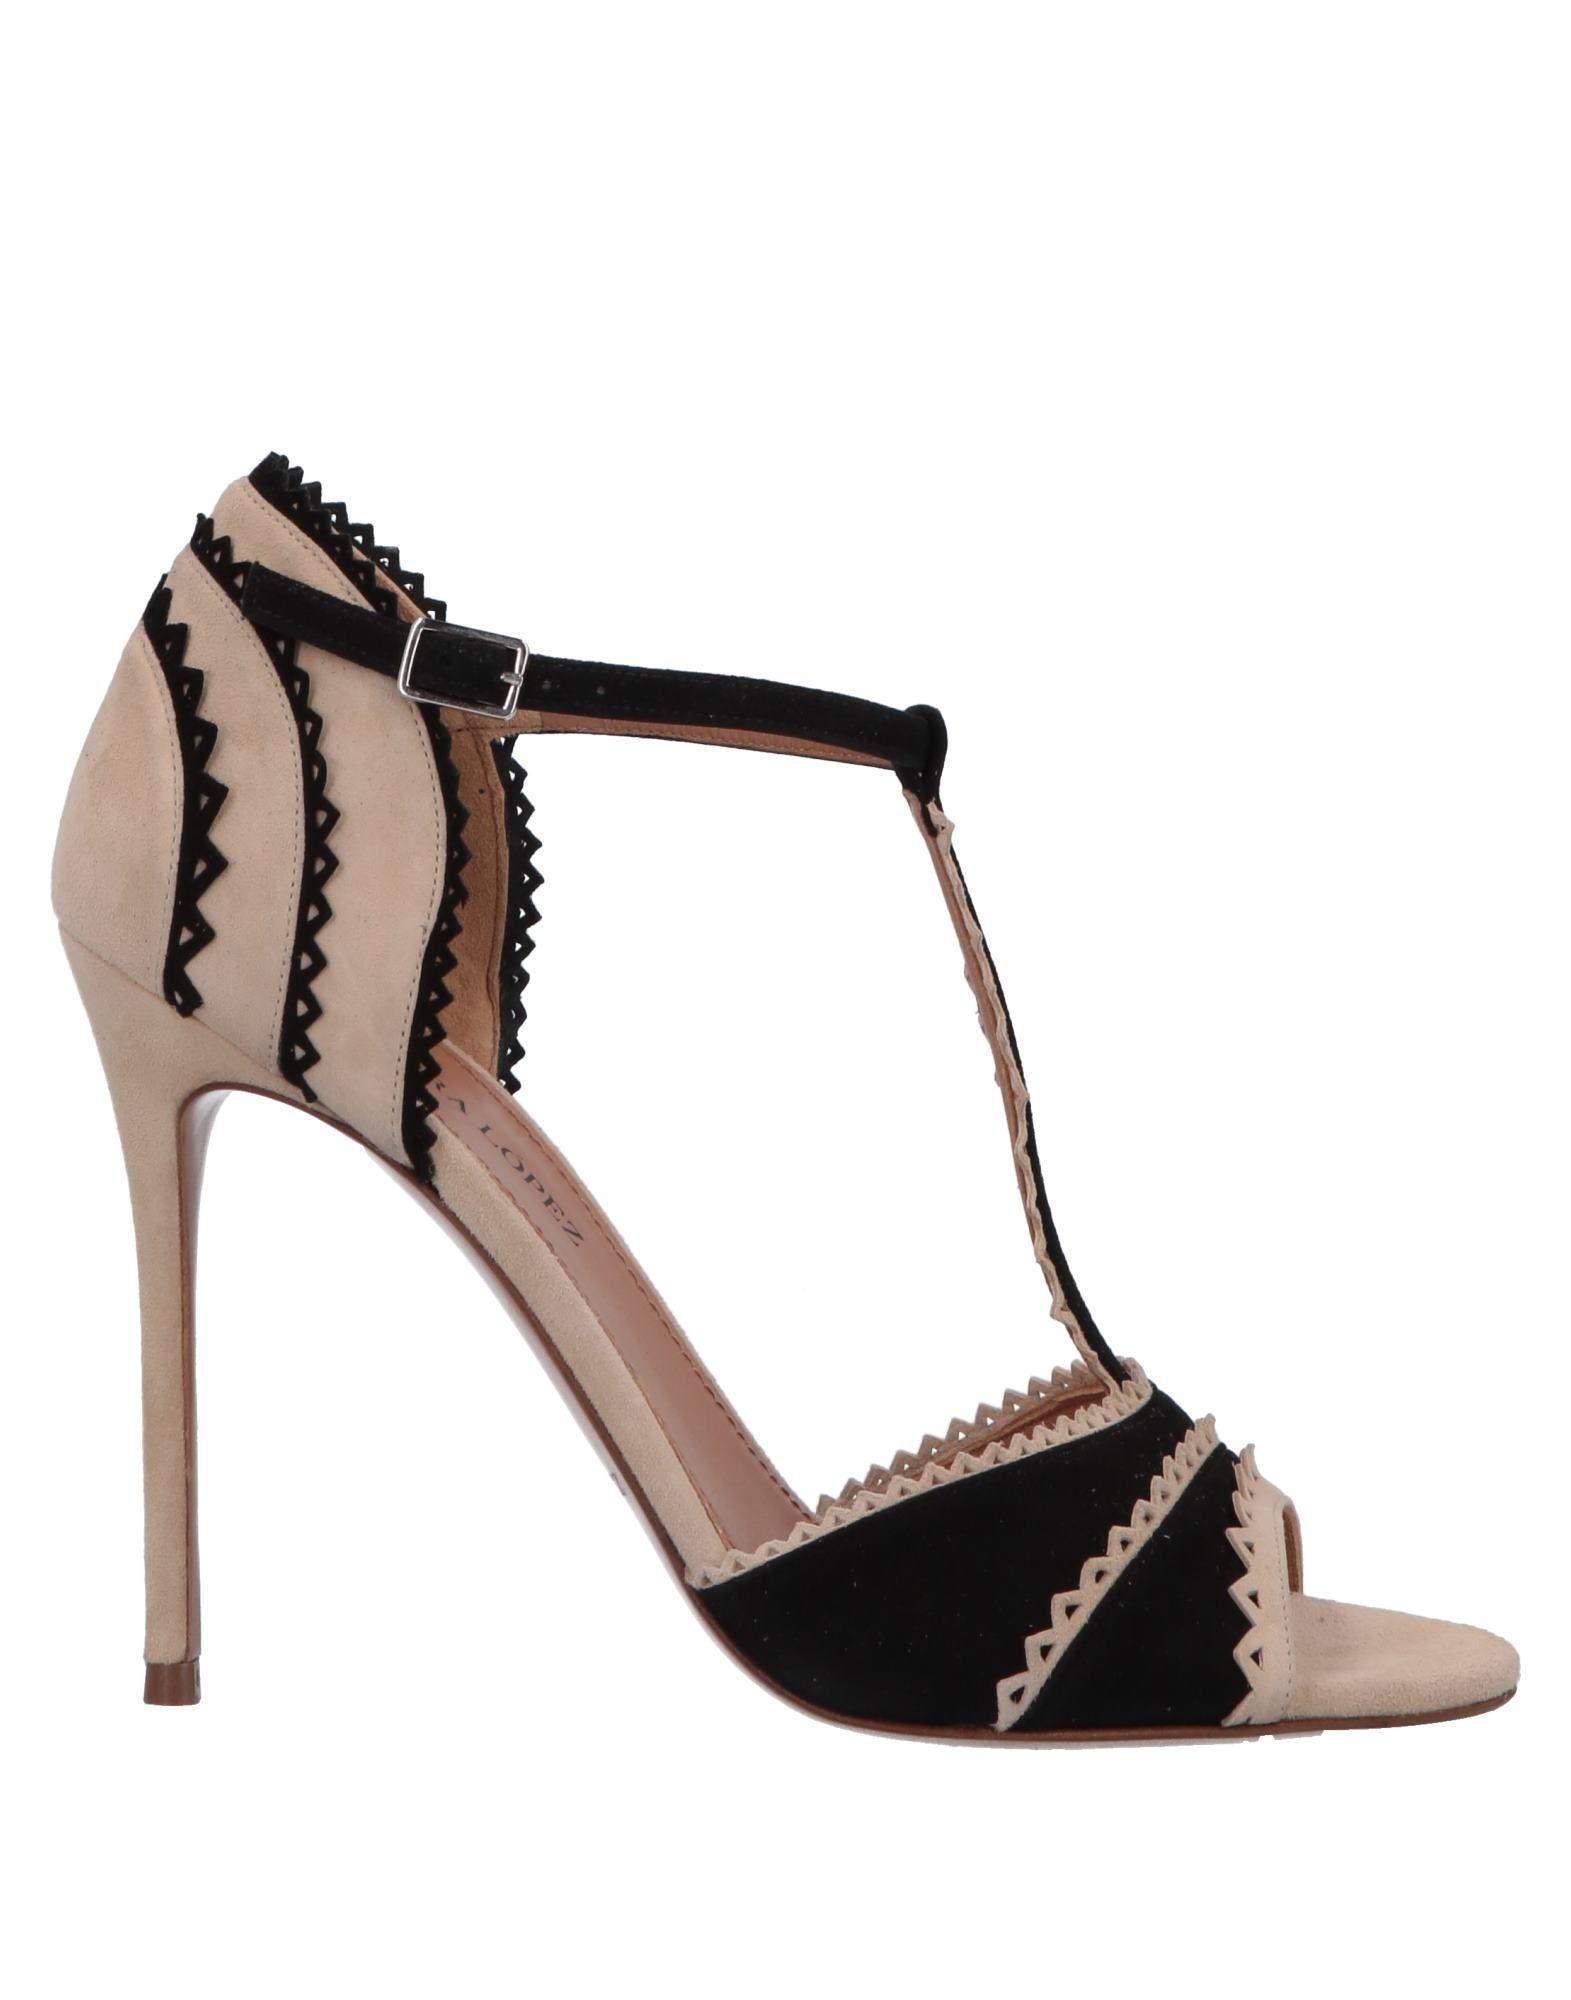 detailed look 4f861 f8a86 Women's Black Sandals